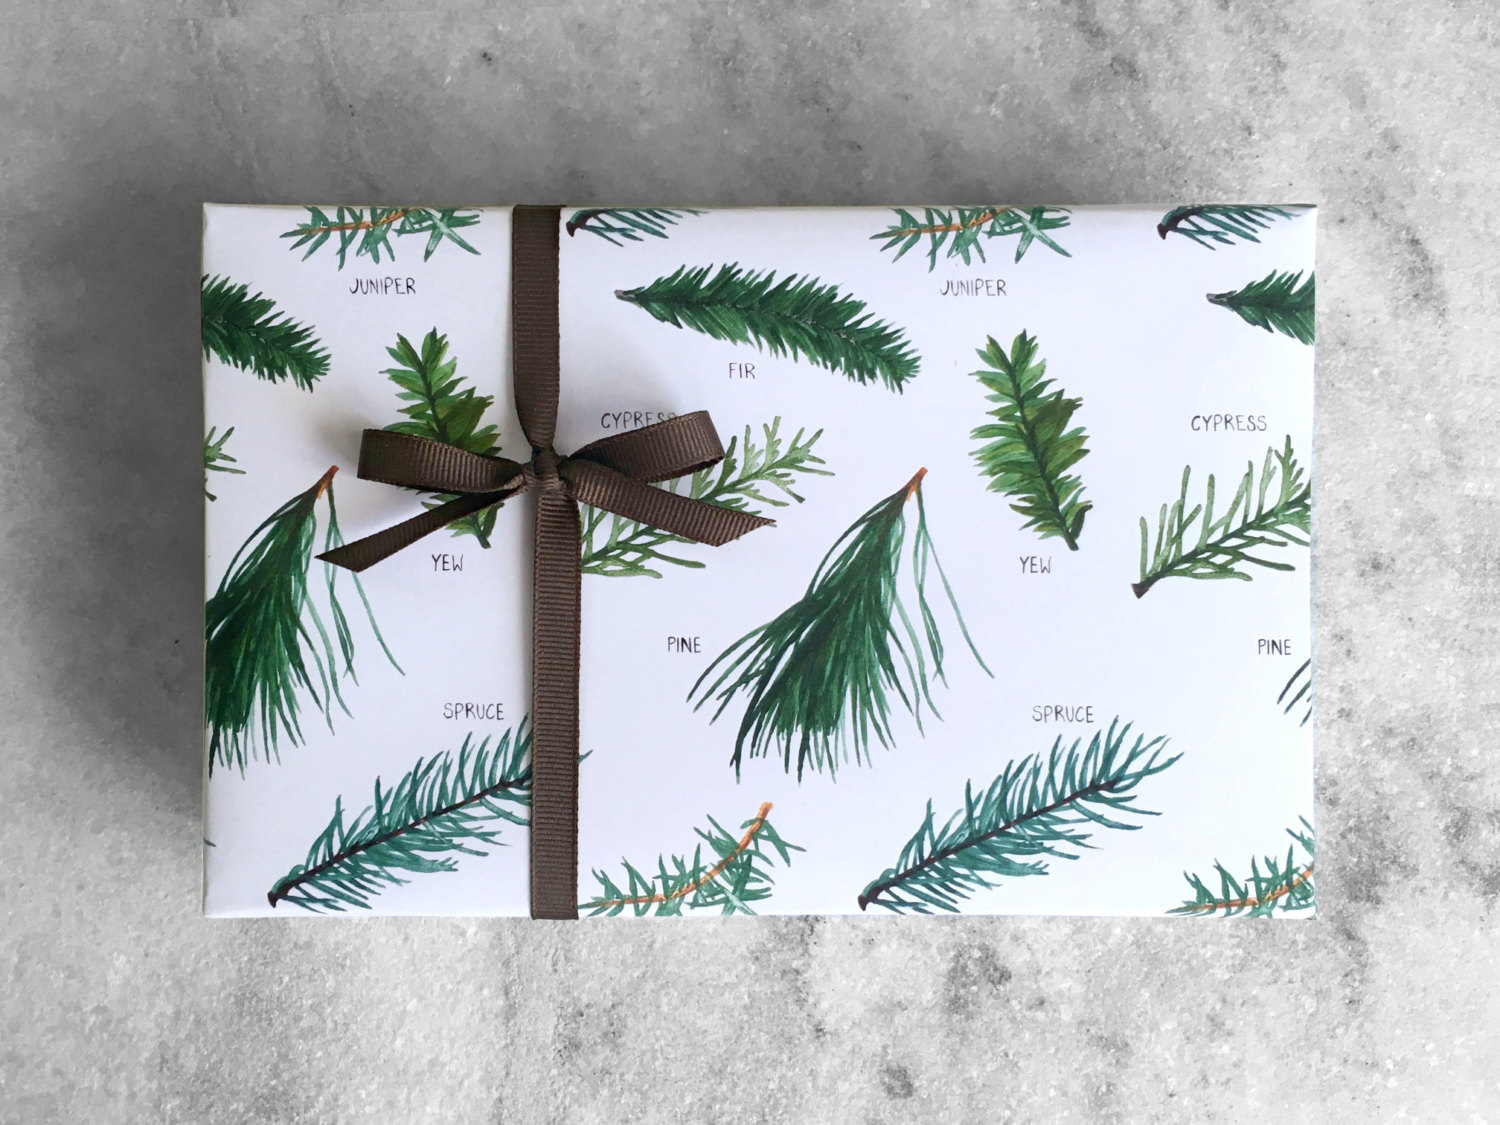 evergreen-tree-christmas-wrapping-paper-gift